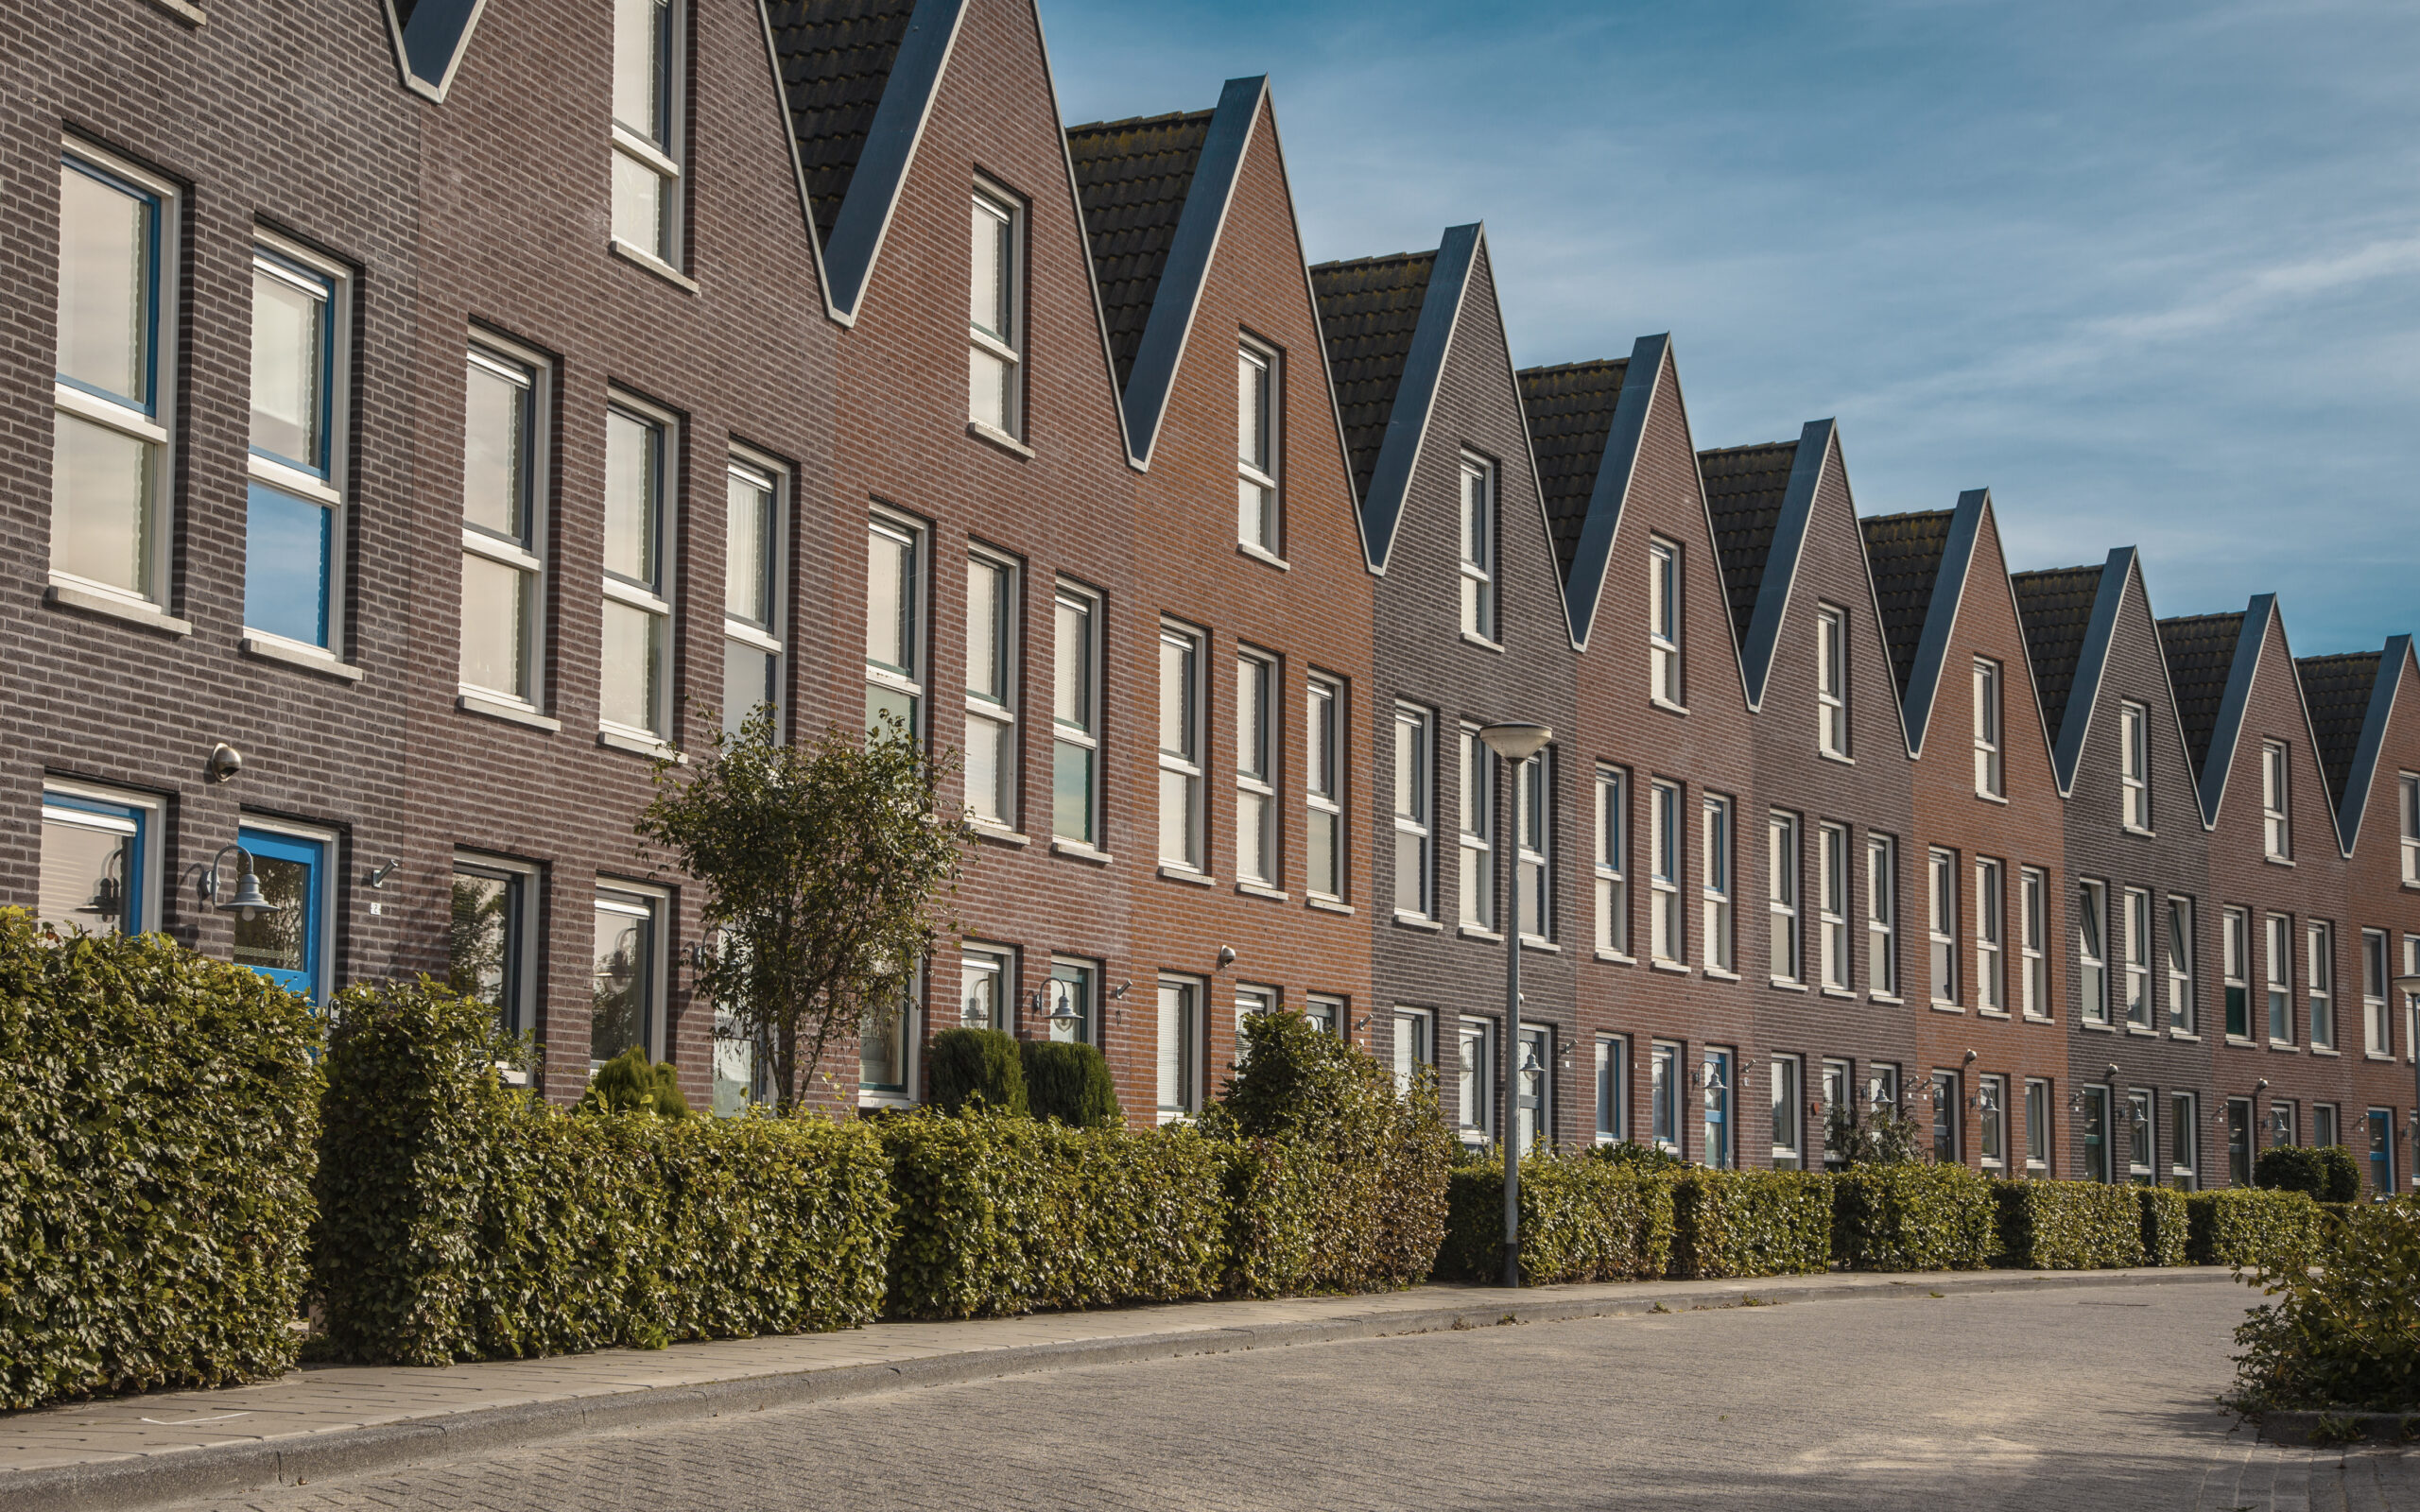 Facade in row of Modern Real Estate Family houses in a suburban area in Europe